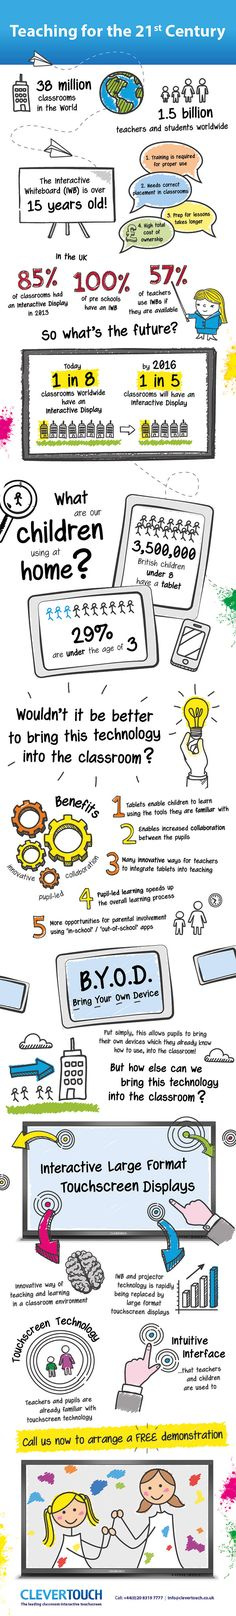 21st Century Teaching Infographic - e-Learning Infographicse-Learning Infographics